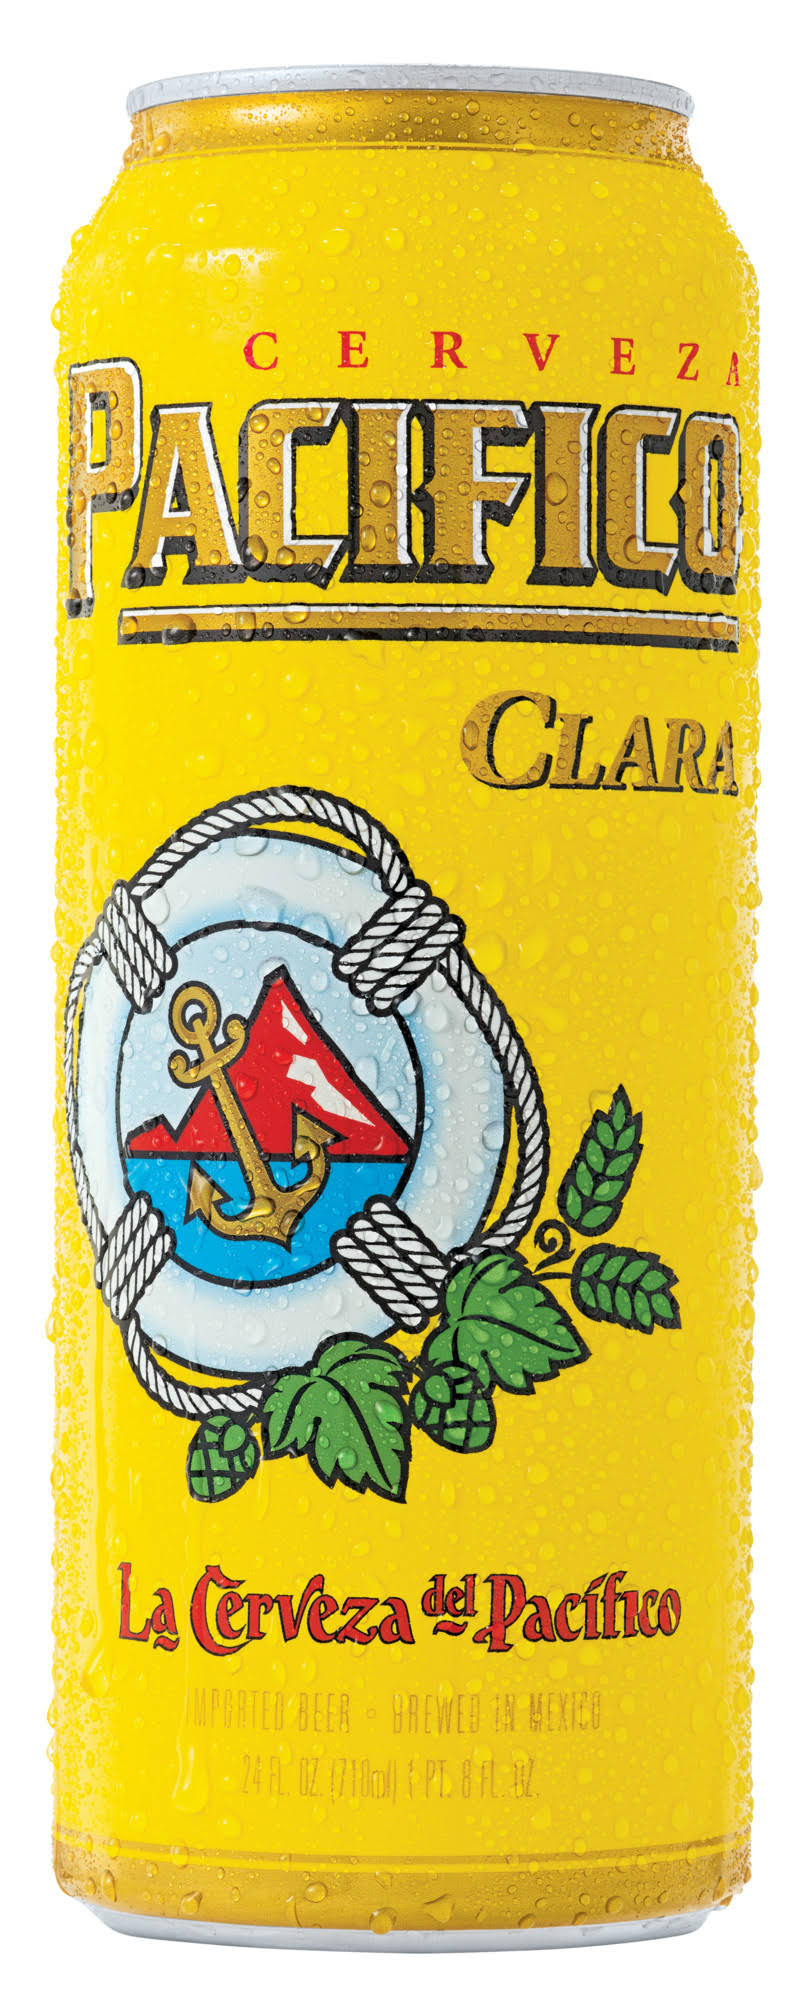 Pacifico Beer, Imported, Clara - 24 fl oz